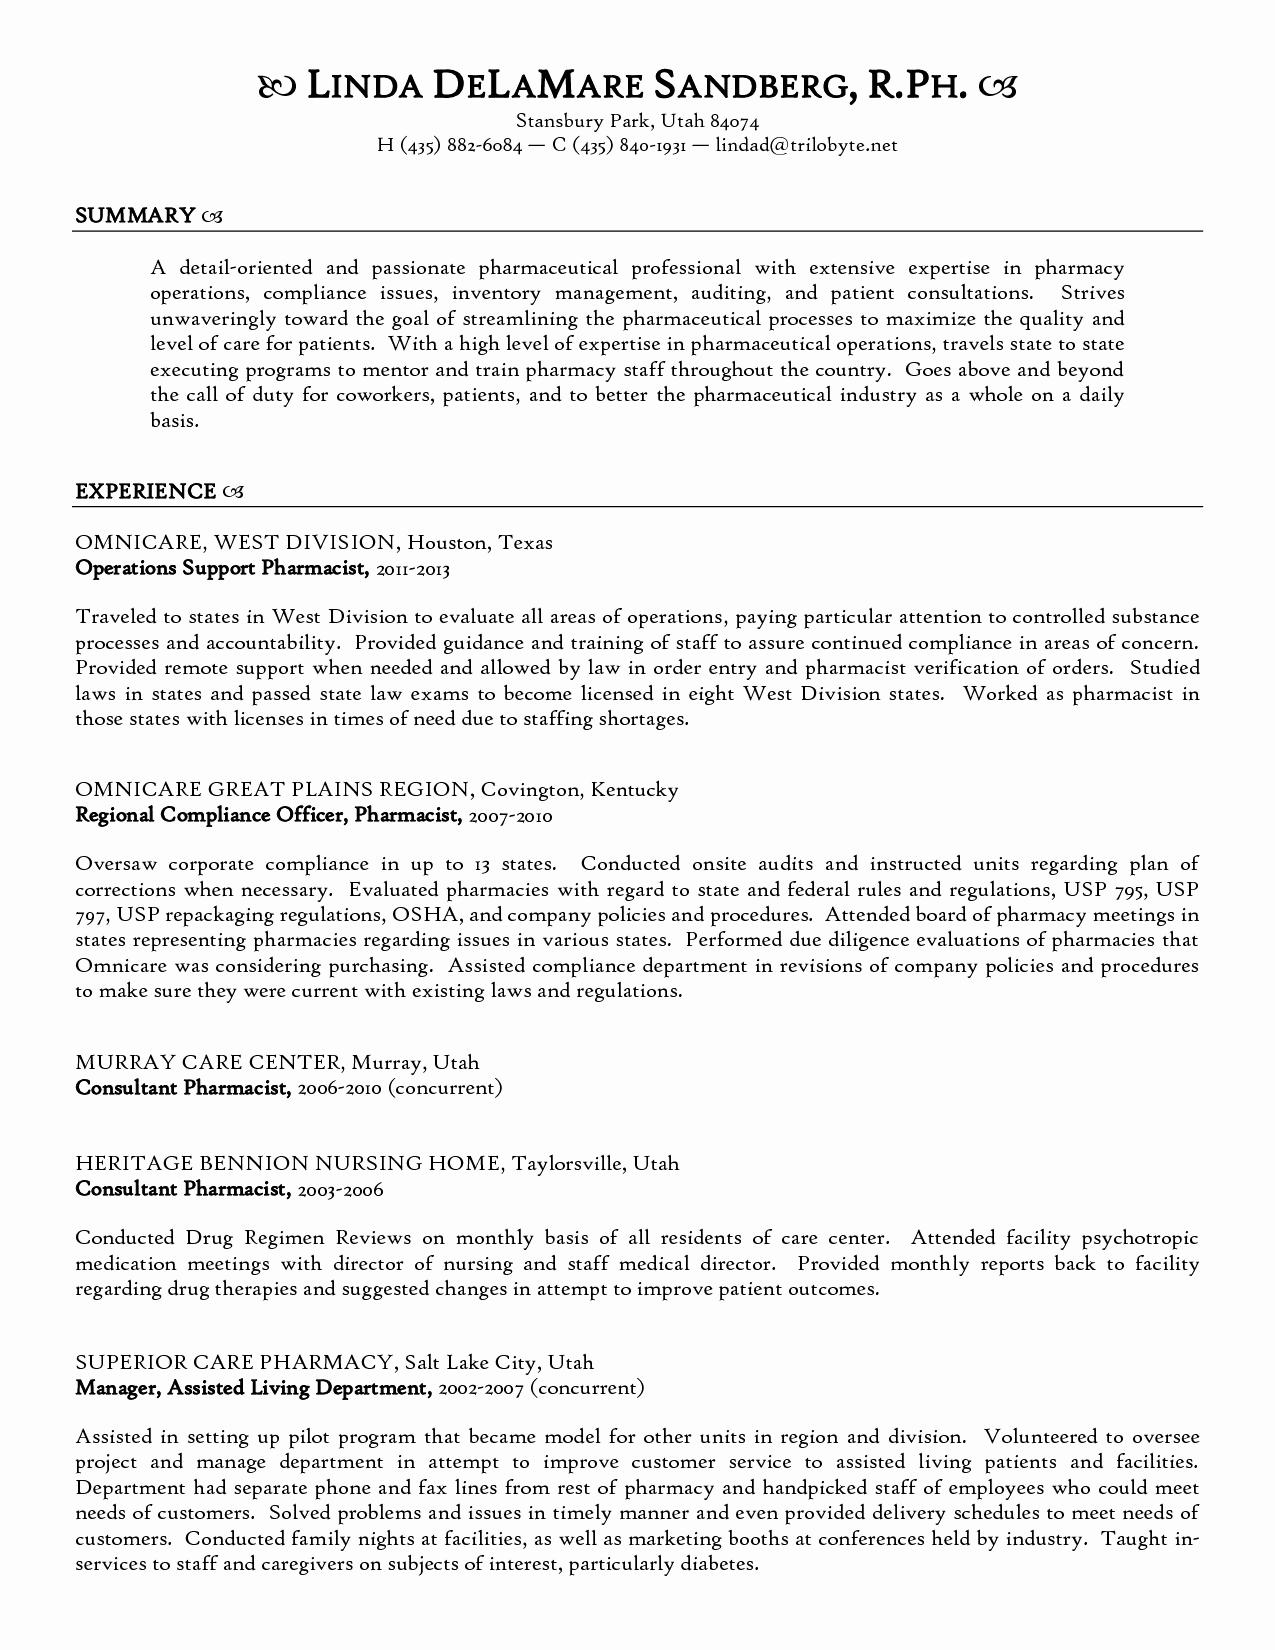 Tech Support Resume - Resume format for Experienced Technical Support Beautiful Pharmacy